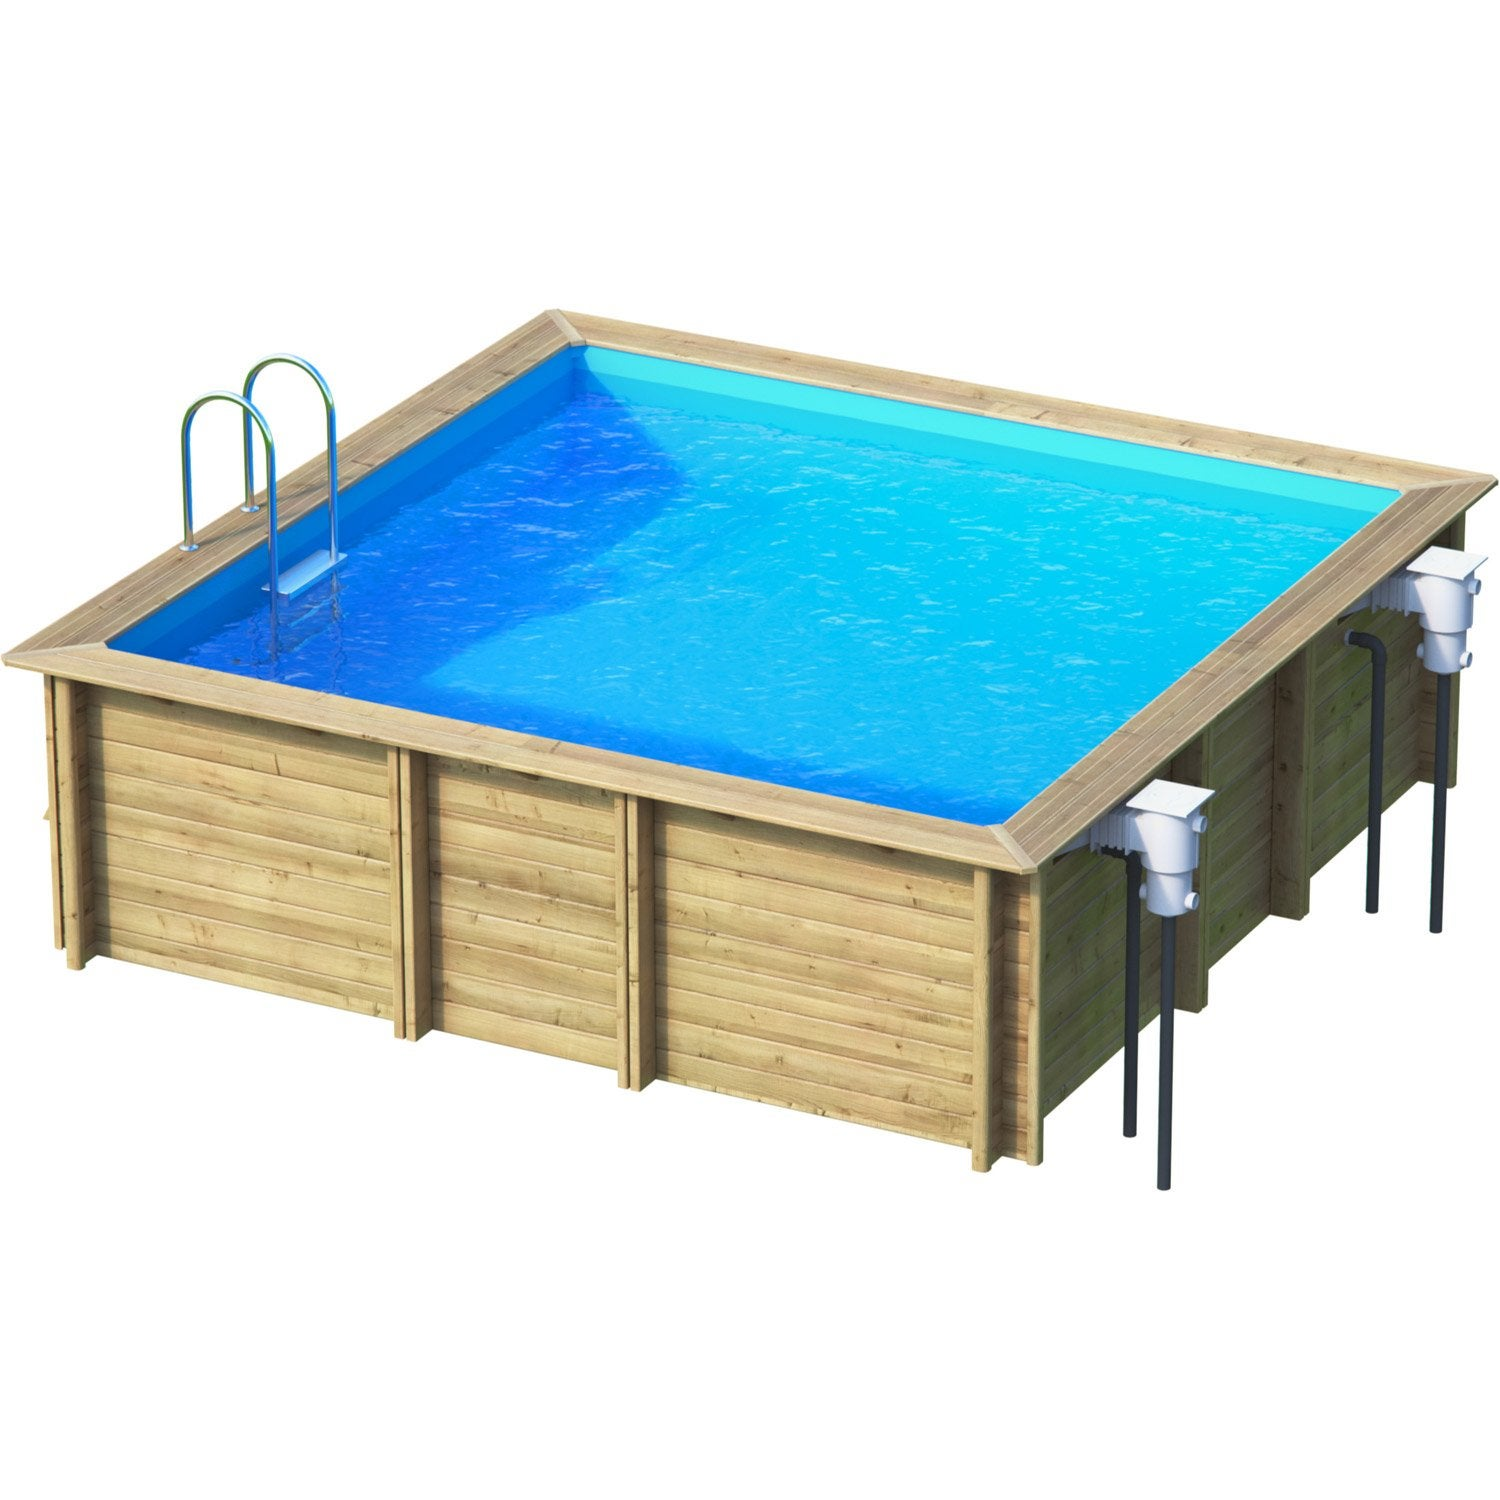 Piscine hors sol rectangulaire pas cher for Piscine tubulaire rectangulaire en solde